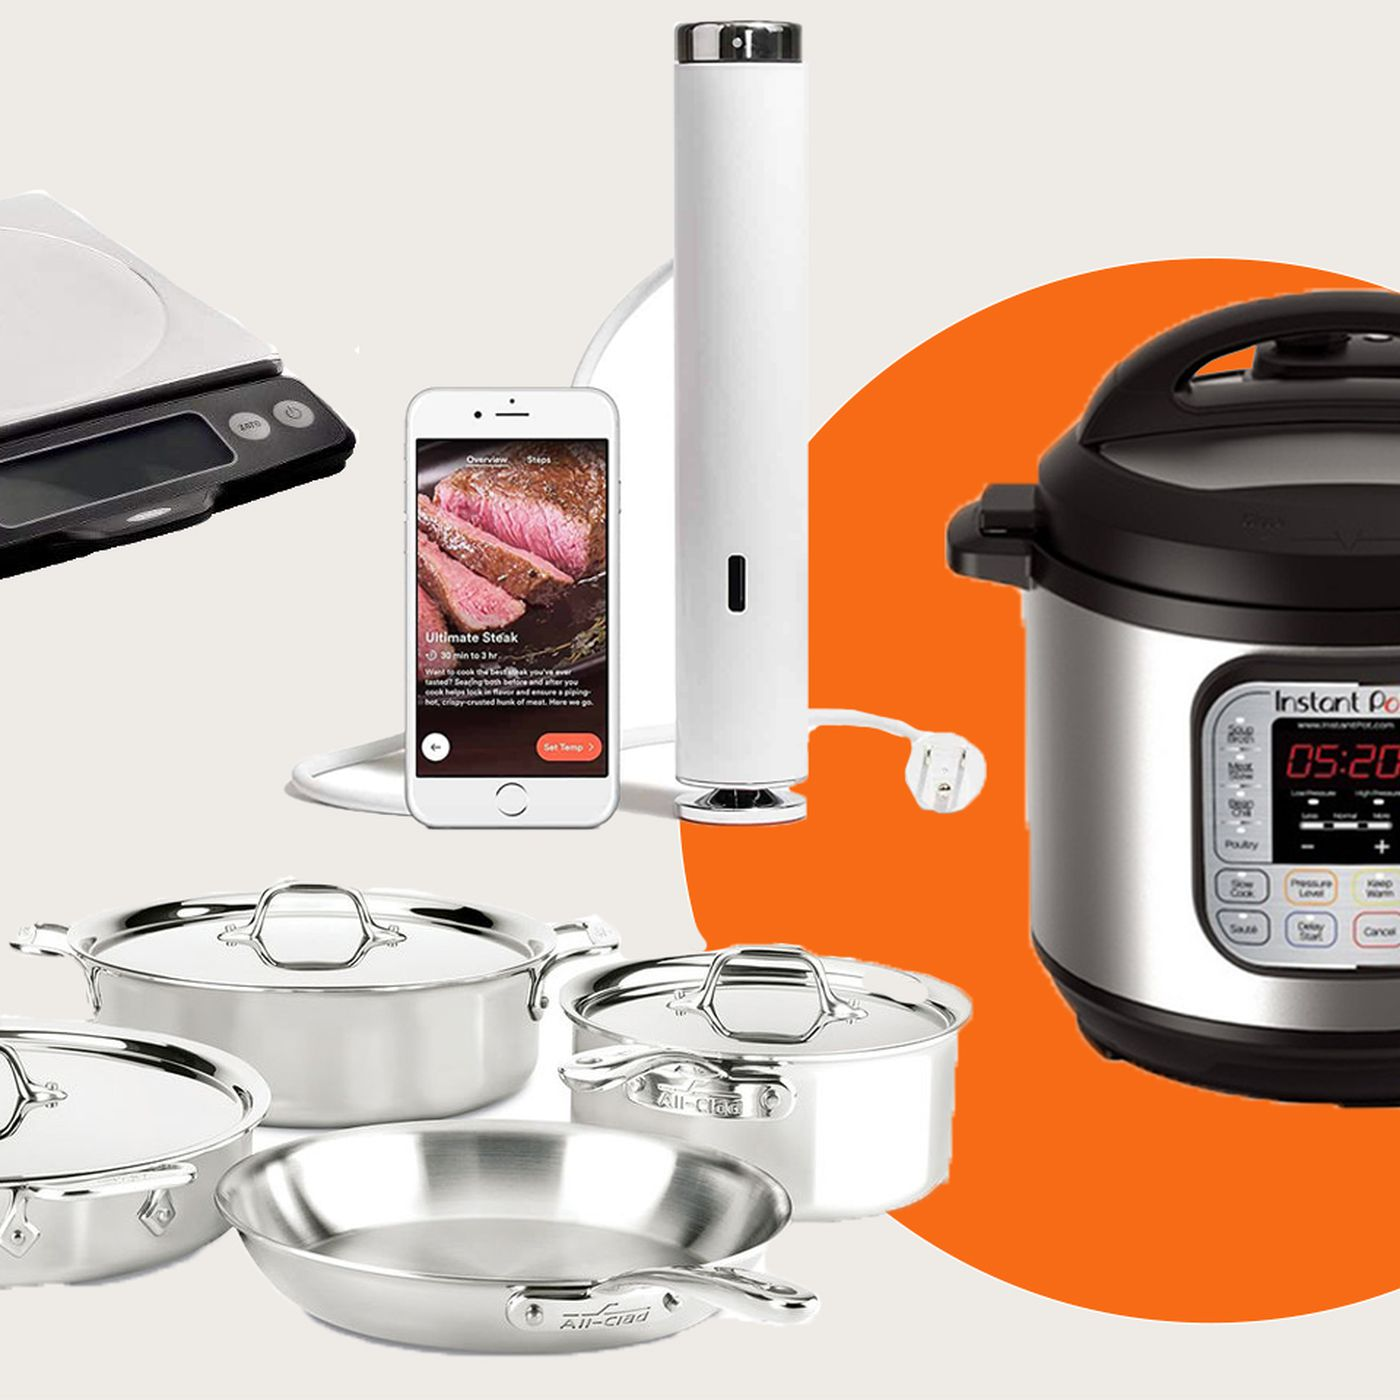 Amazon Prime Day 2019 Deals on Cooking Gadgets and Other ...